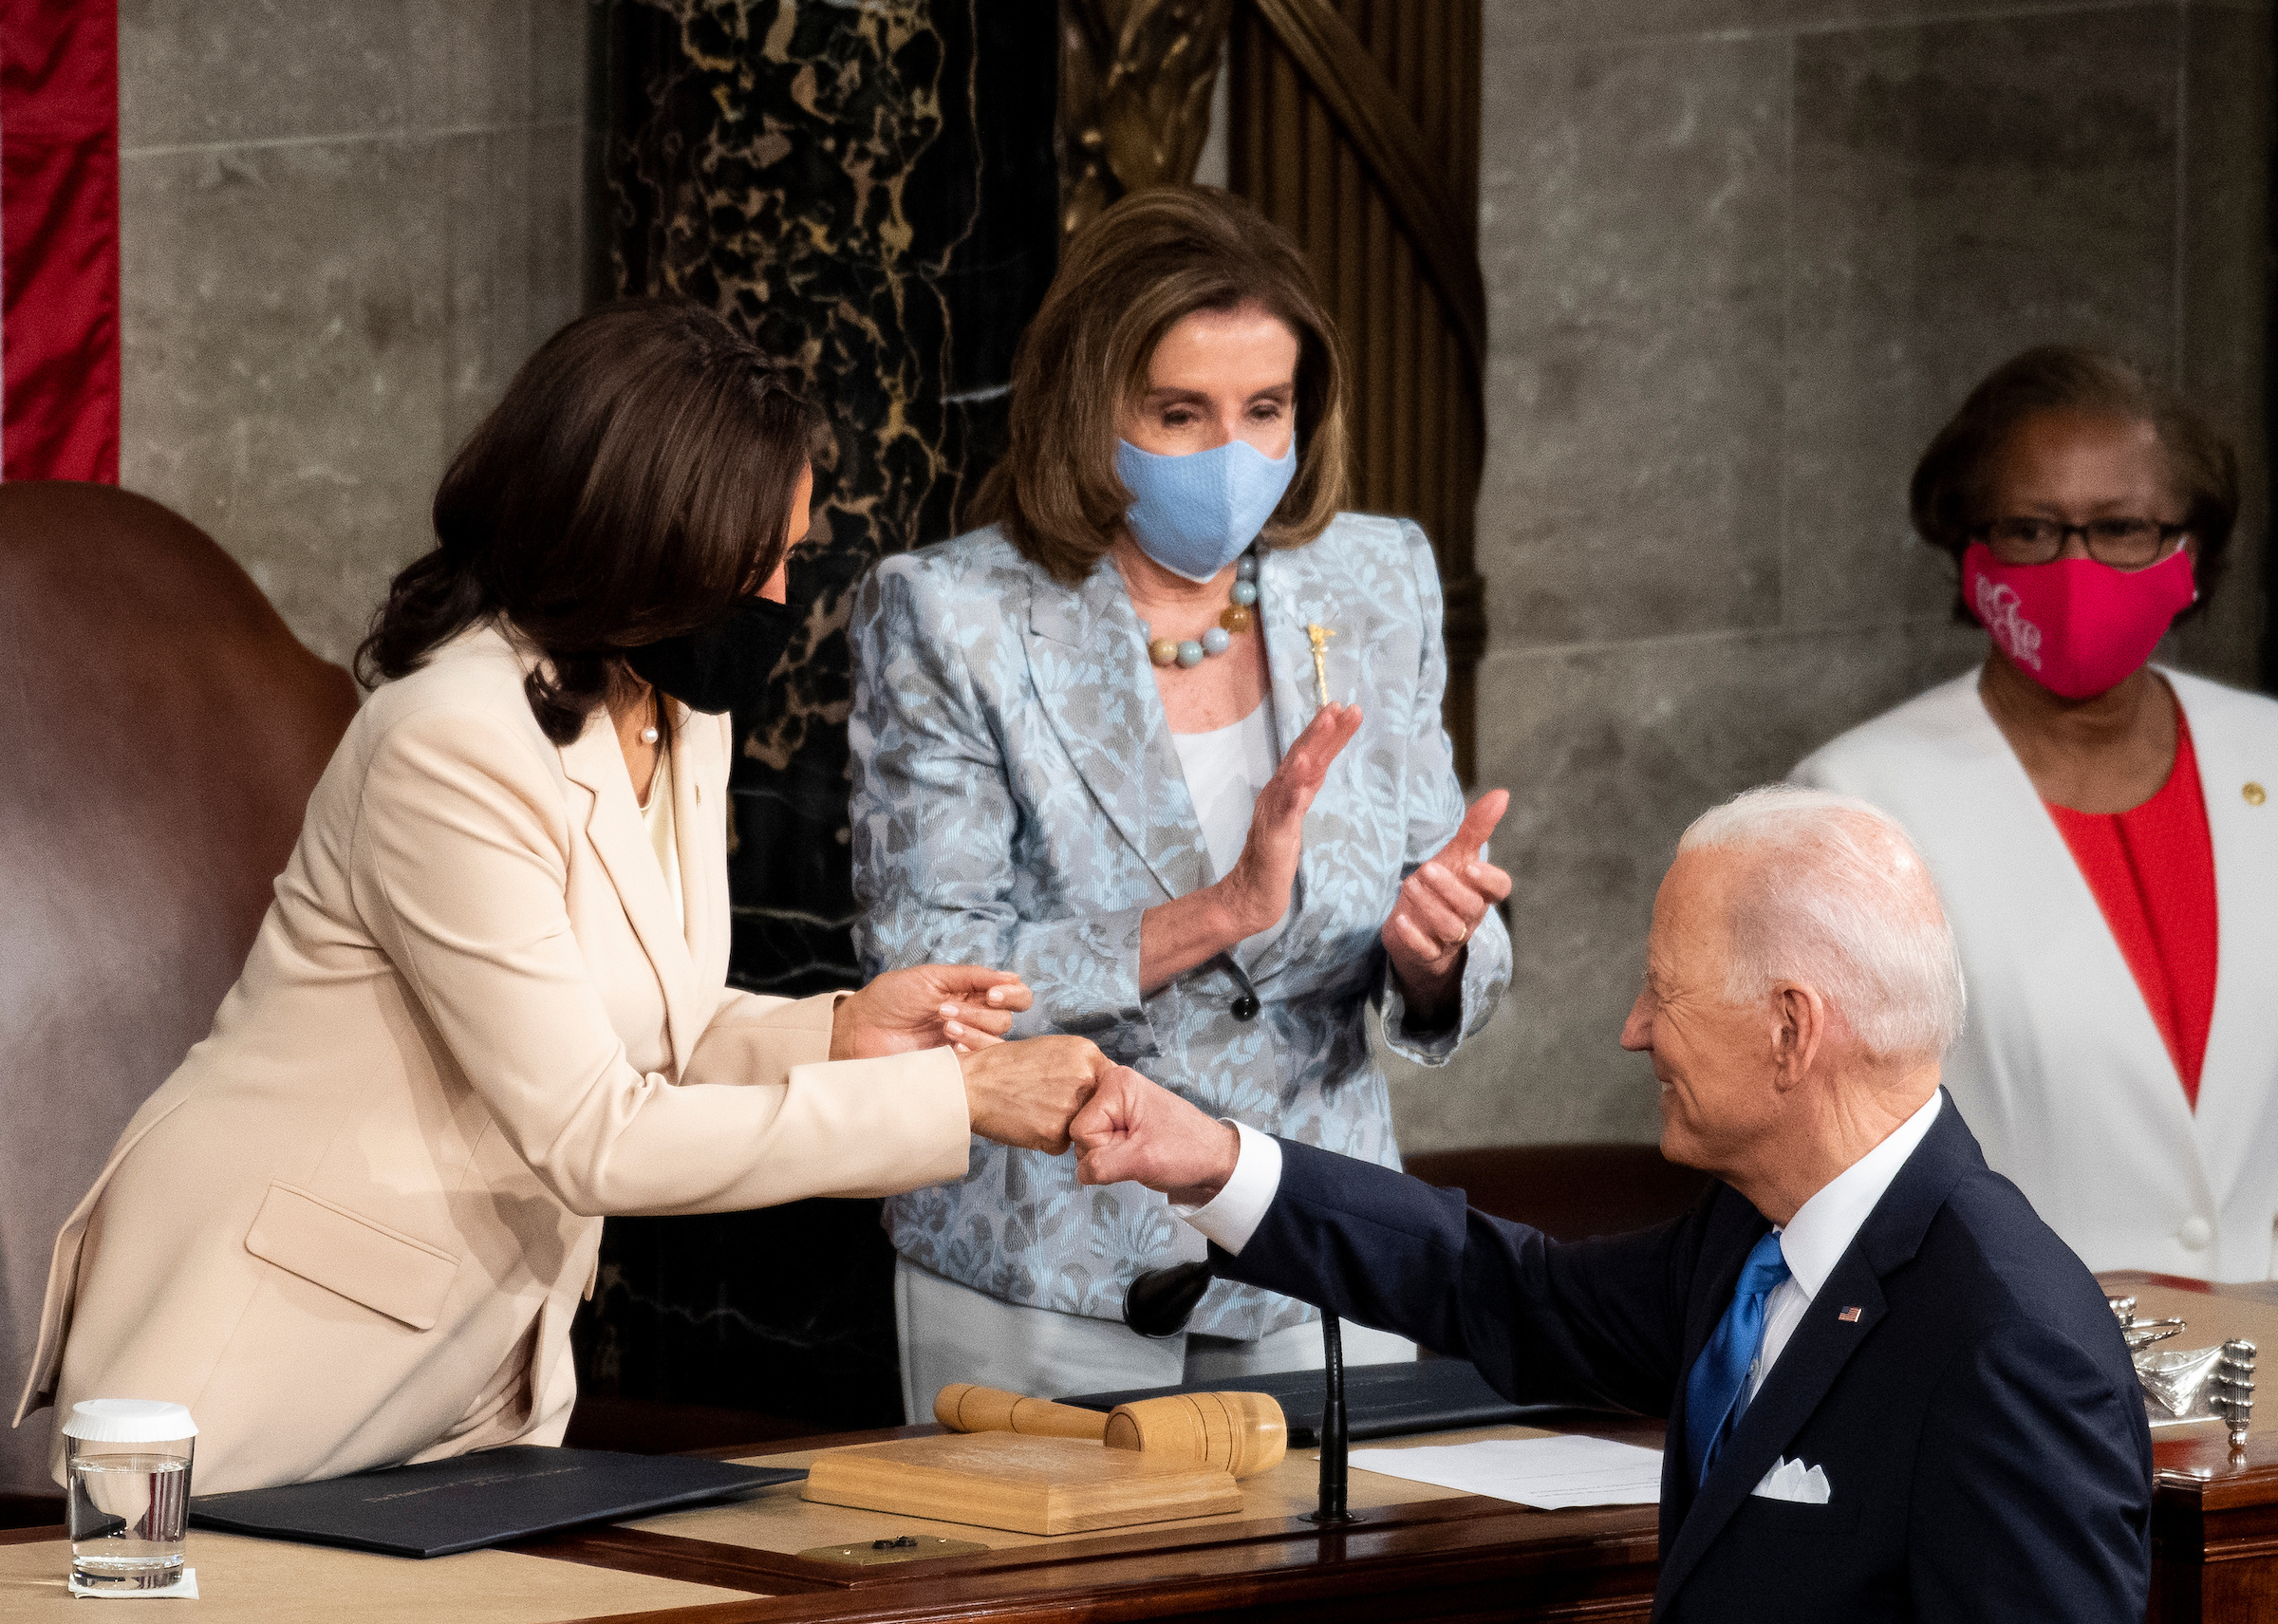 President Joe Biden fist-bumps Vice President Kamala Harris at his April 28 joint session address as Speaker Nancy Pelosi looks on. Voters may end up frowning on his expansive government agenda, Rothenberg writes.  (Caroline Brehman/CQ Roll Call)